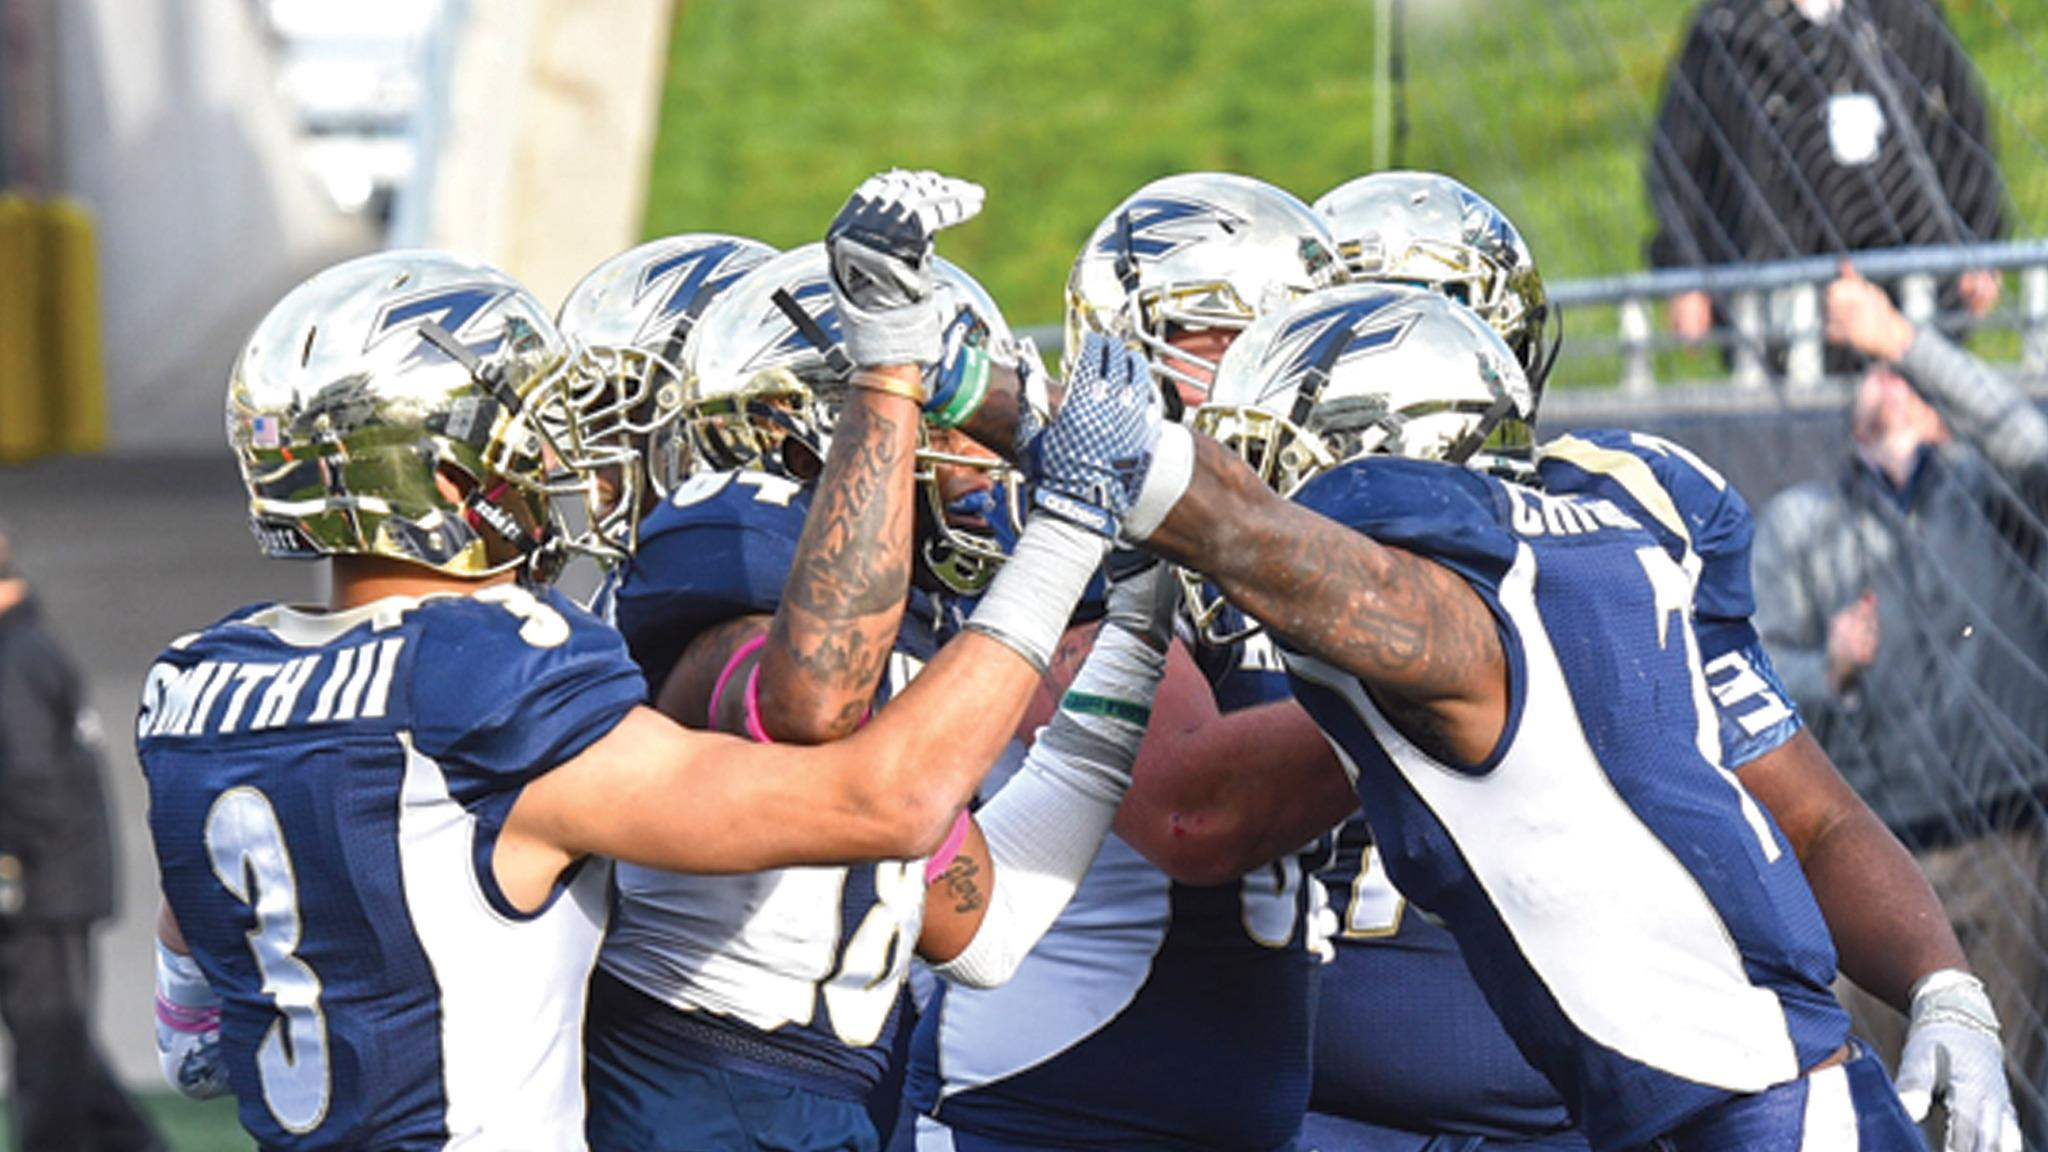 Akron Zips Football vs. Buffalo Bulls Football